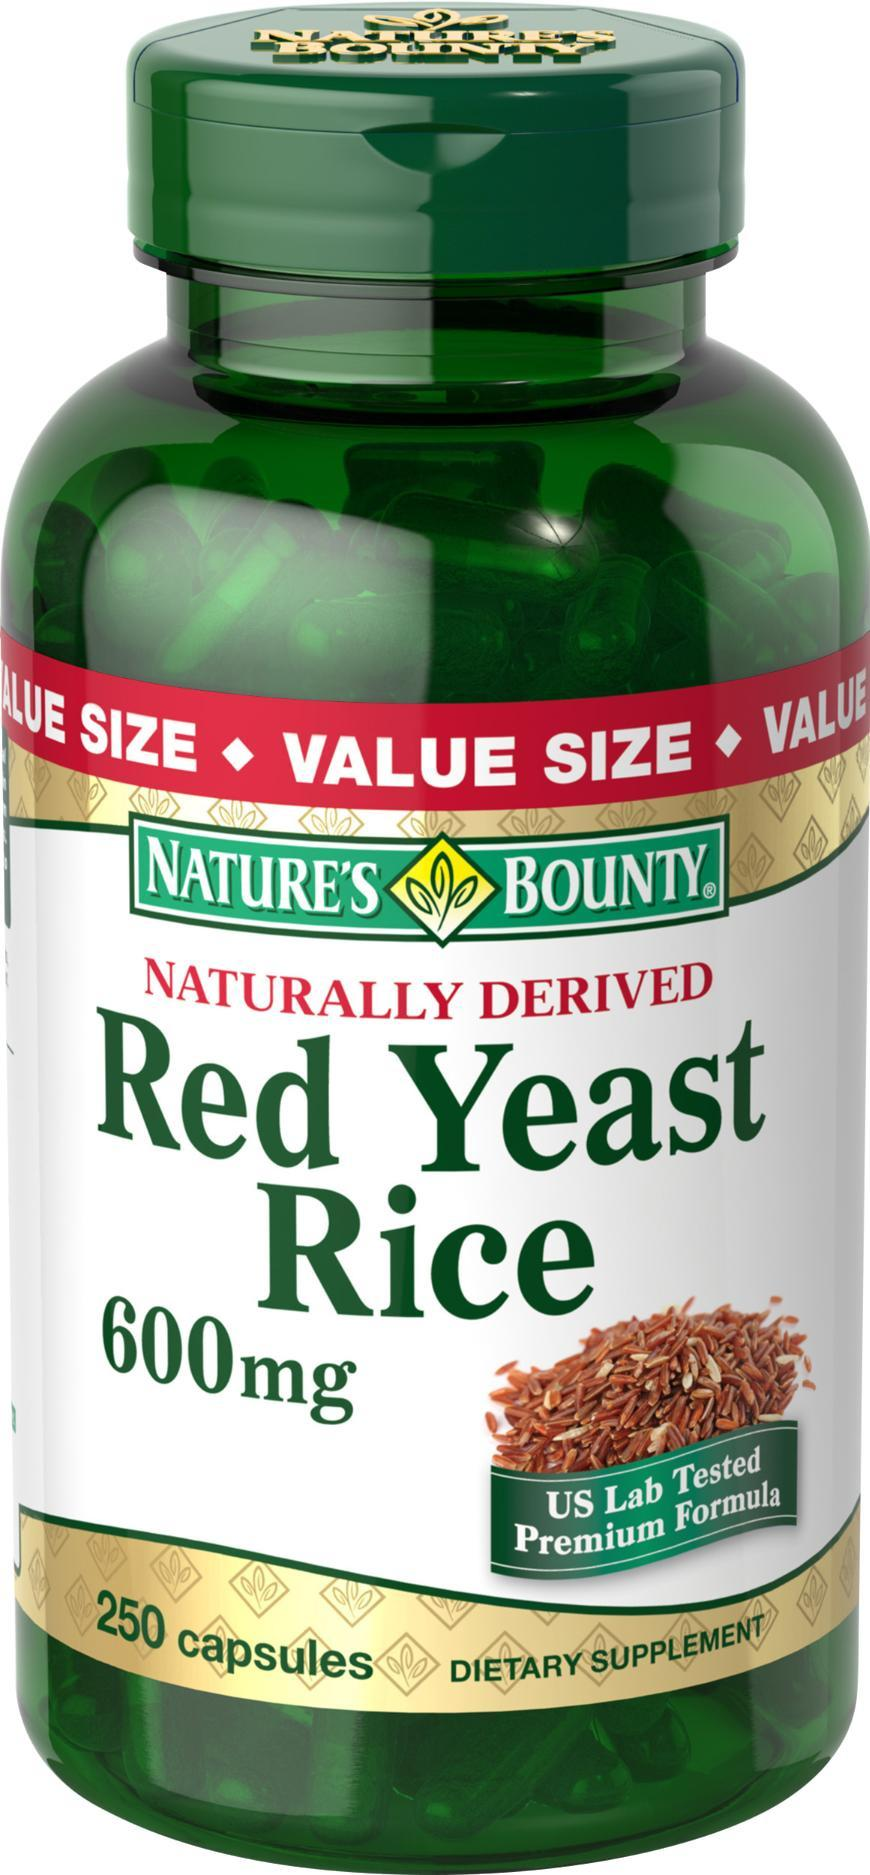 Nature's Bounty Red Yeast Rice, 600 mg